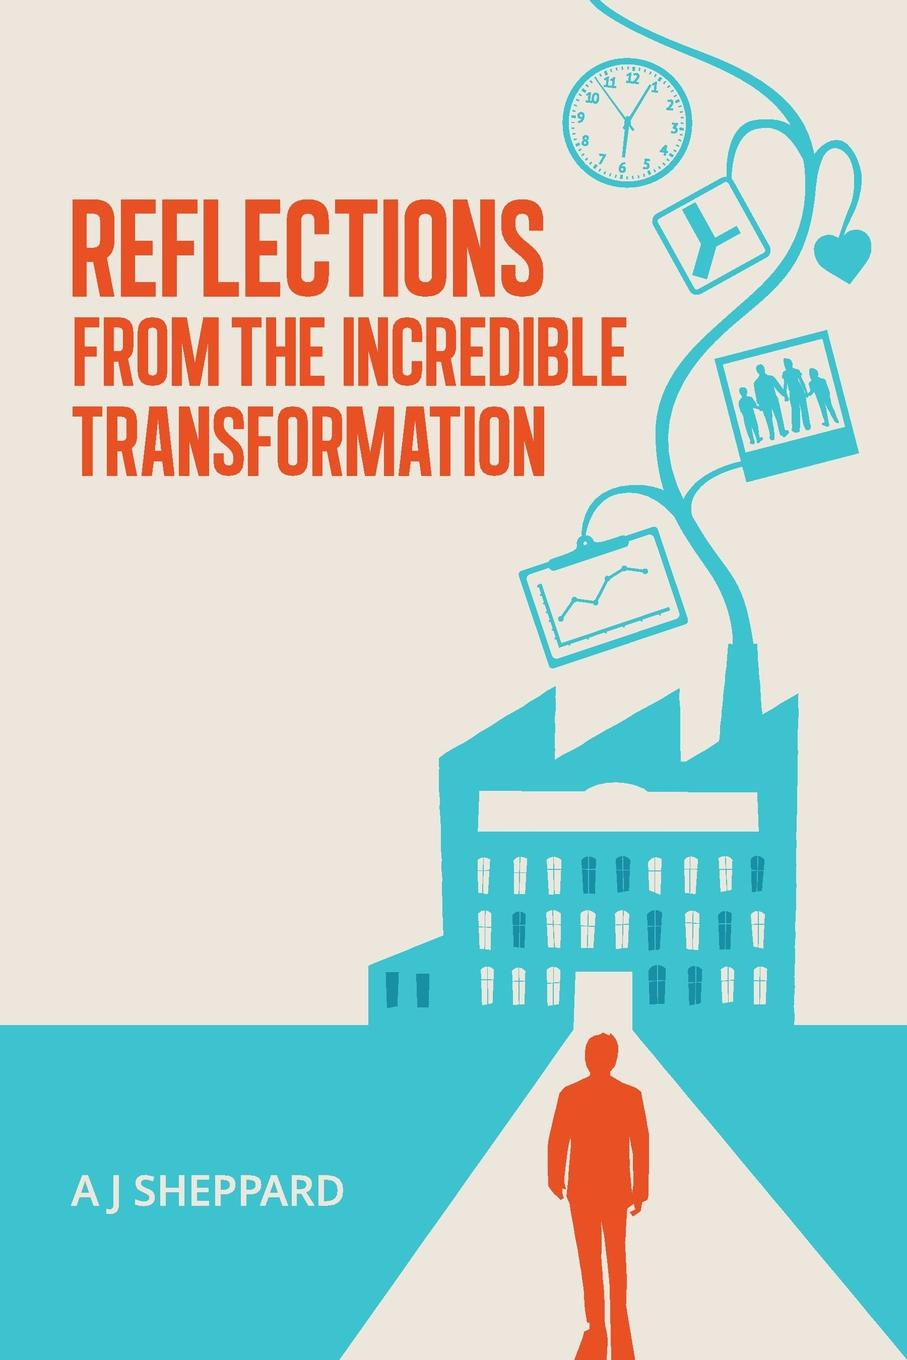 A J Sheppard Reflections from the Incredible Transformation. An Exploration in Lateral Thinking between Business Life and Spiritual